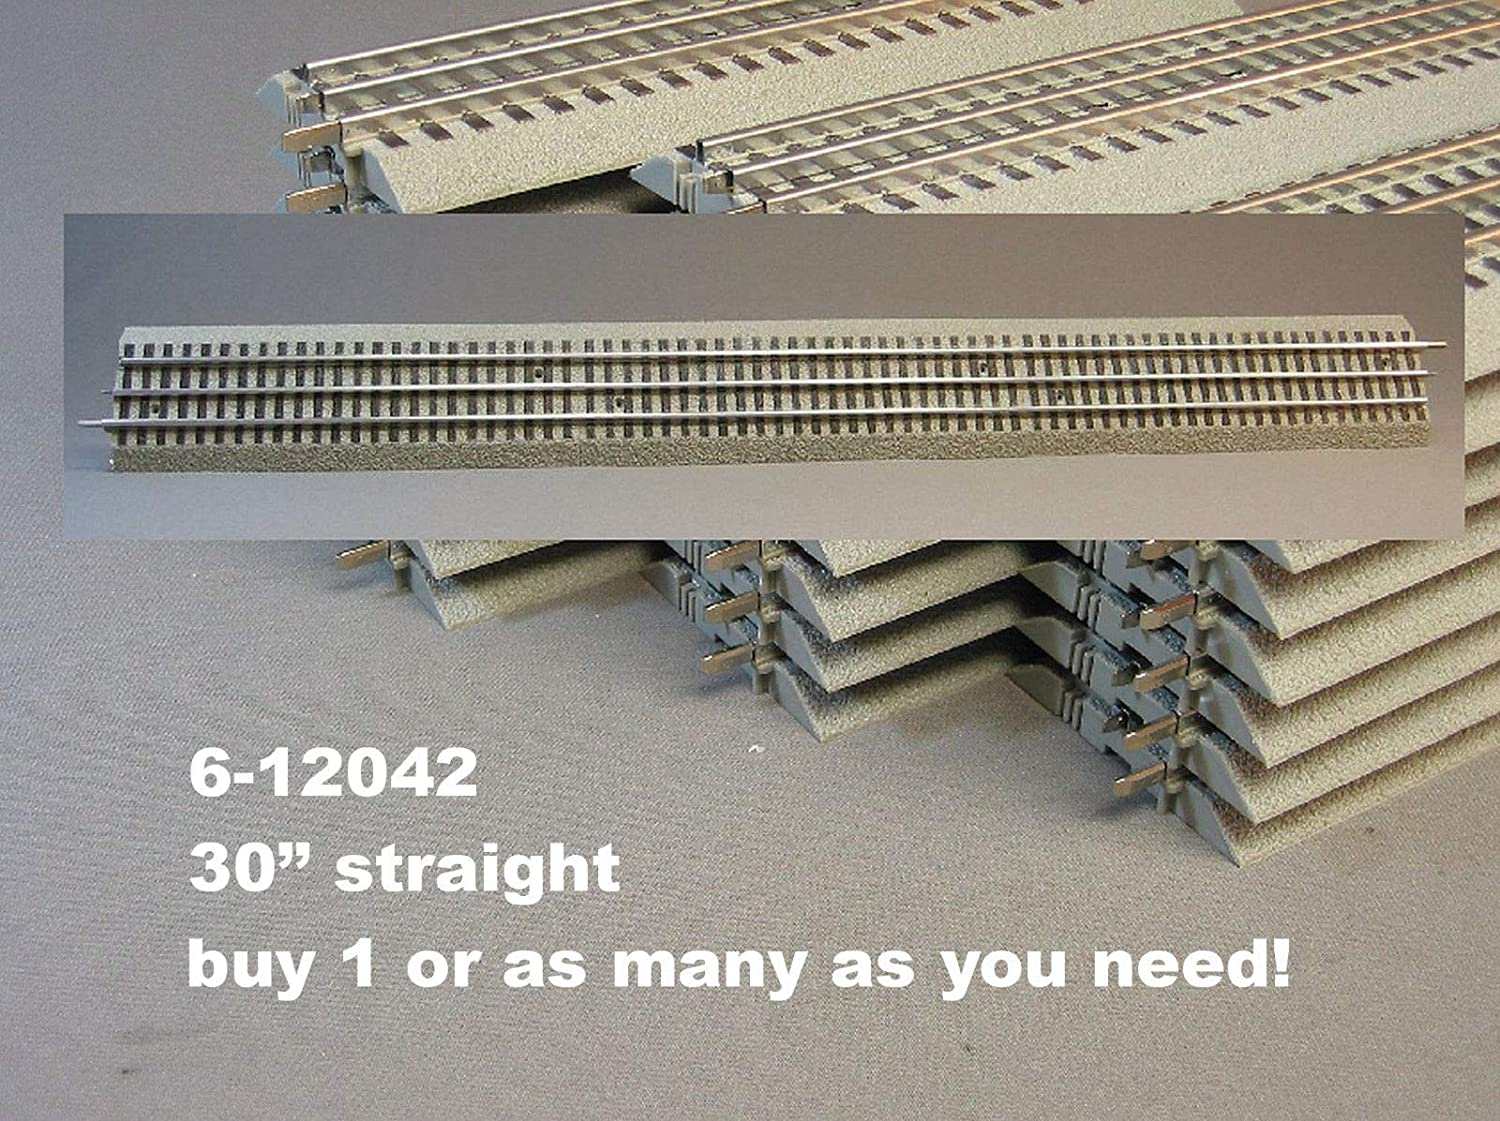 Lionel FasTrack 30 inch Extra Long Straight Track Train